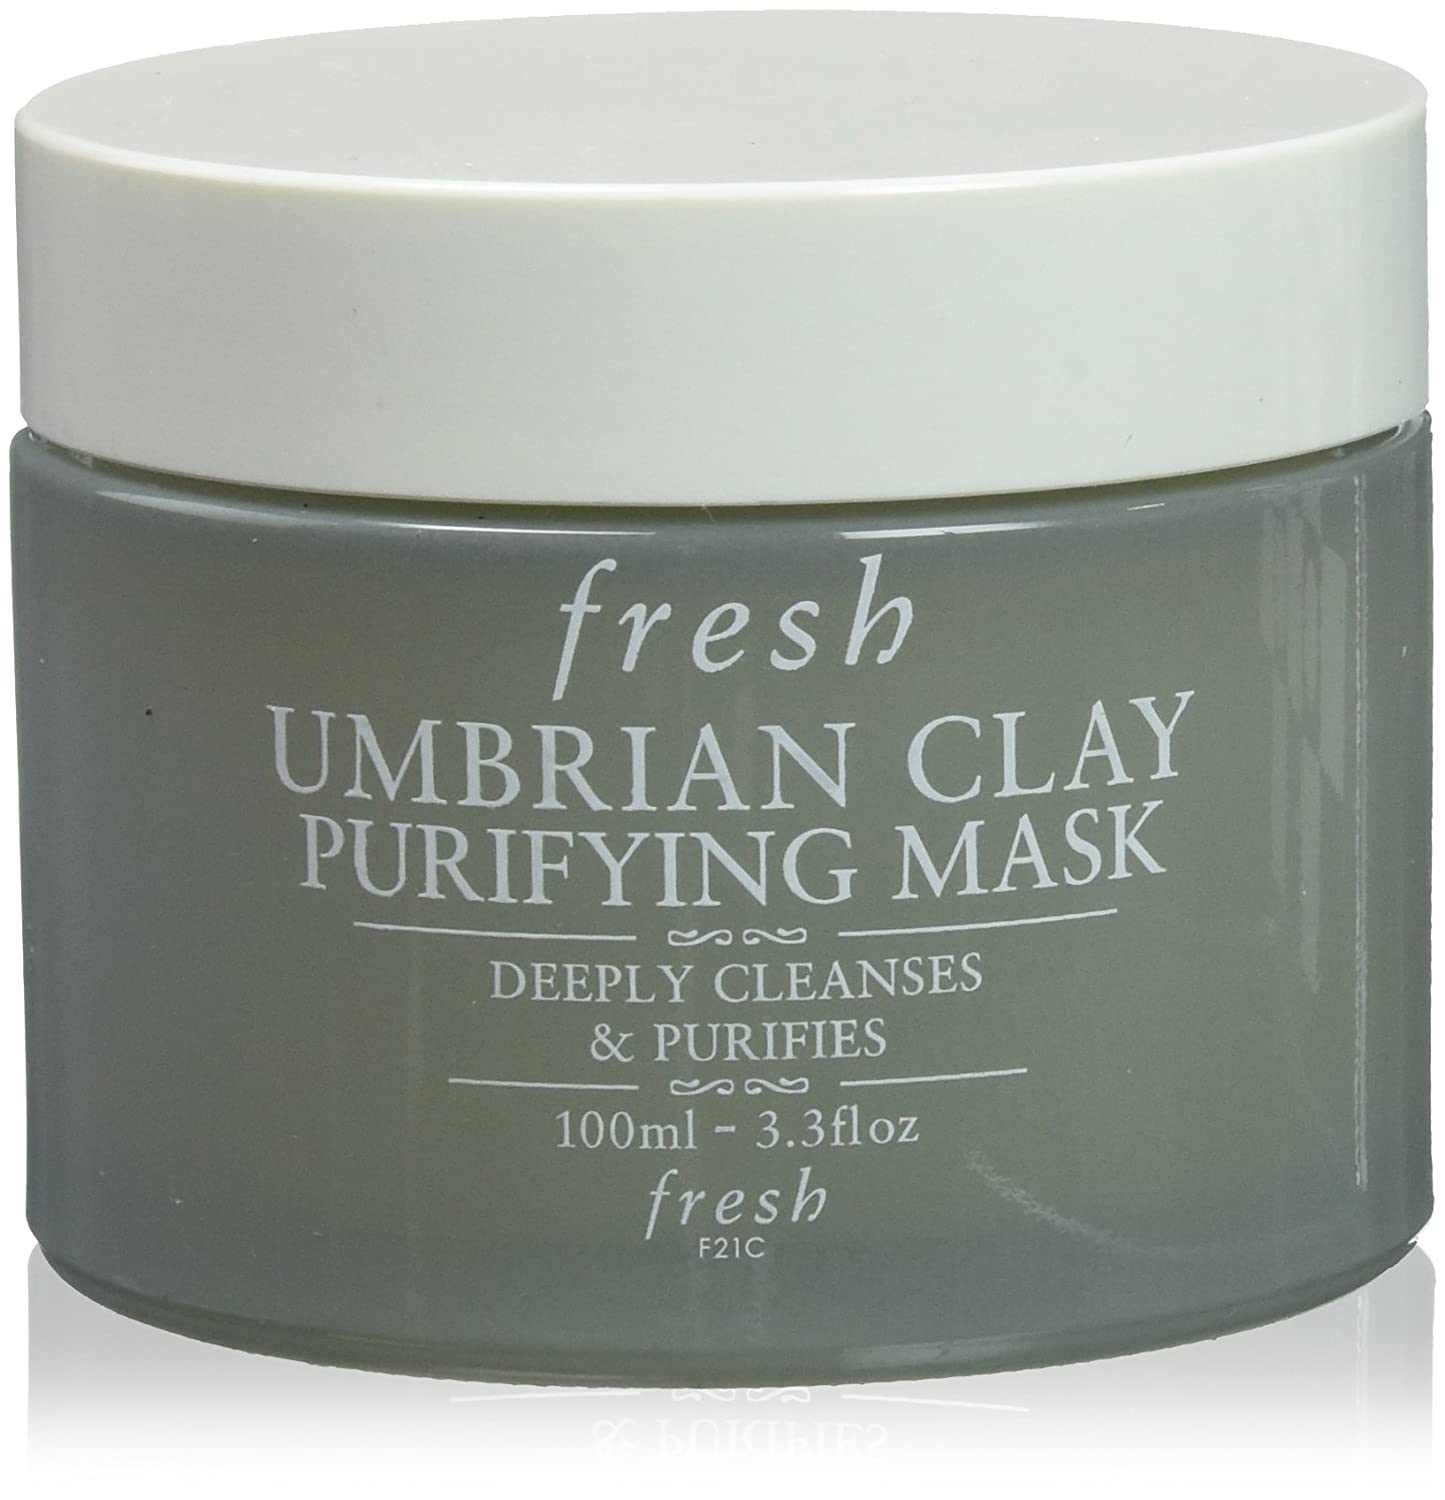 Fresh Umbrian Clay Purifying Mask, for Normal To Oily Skin